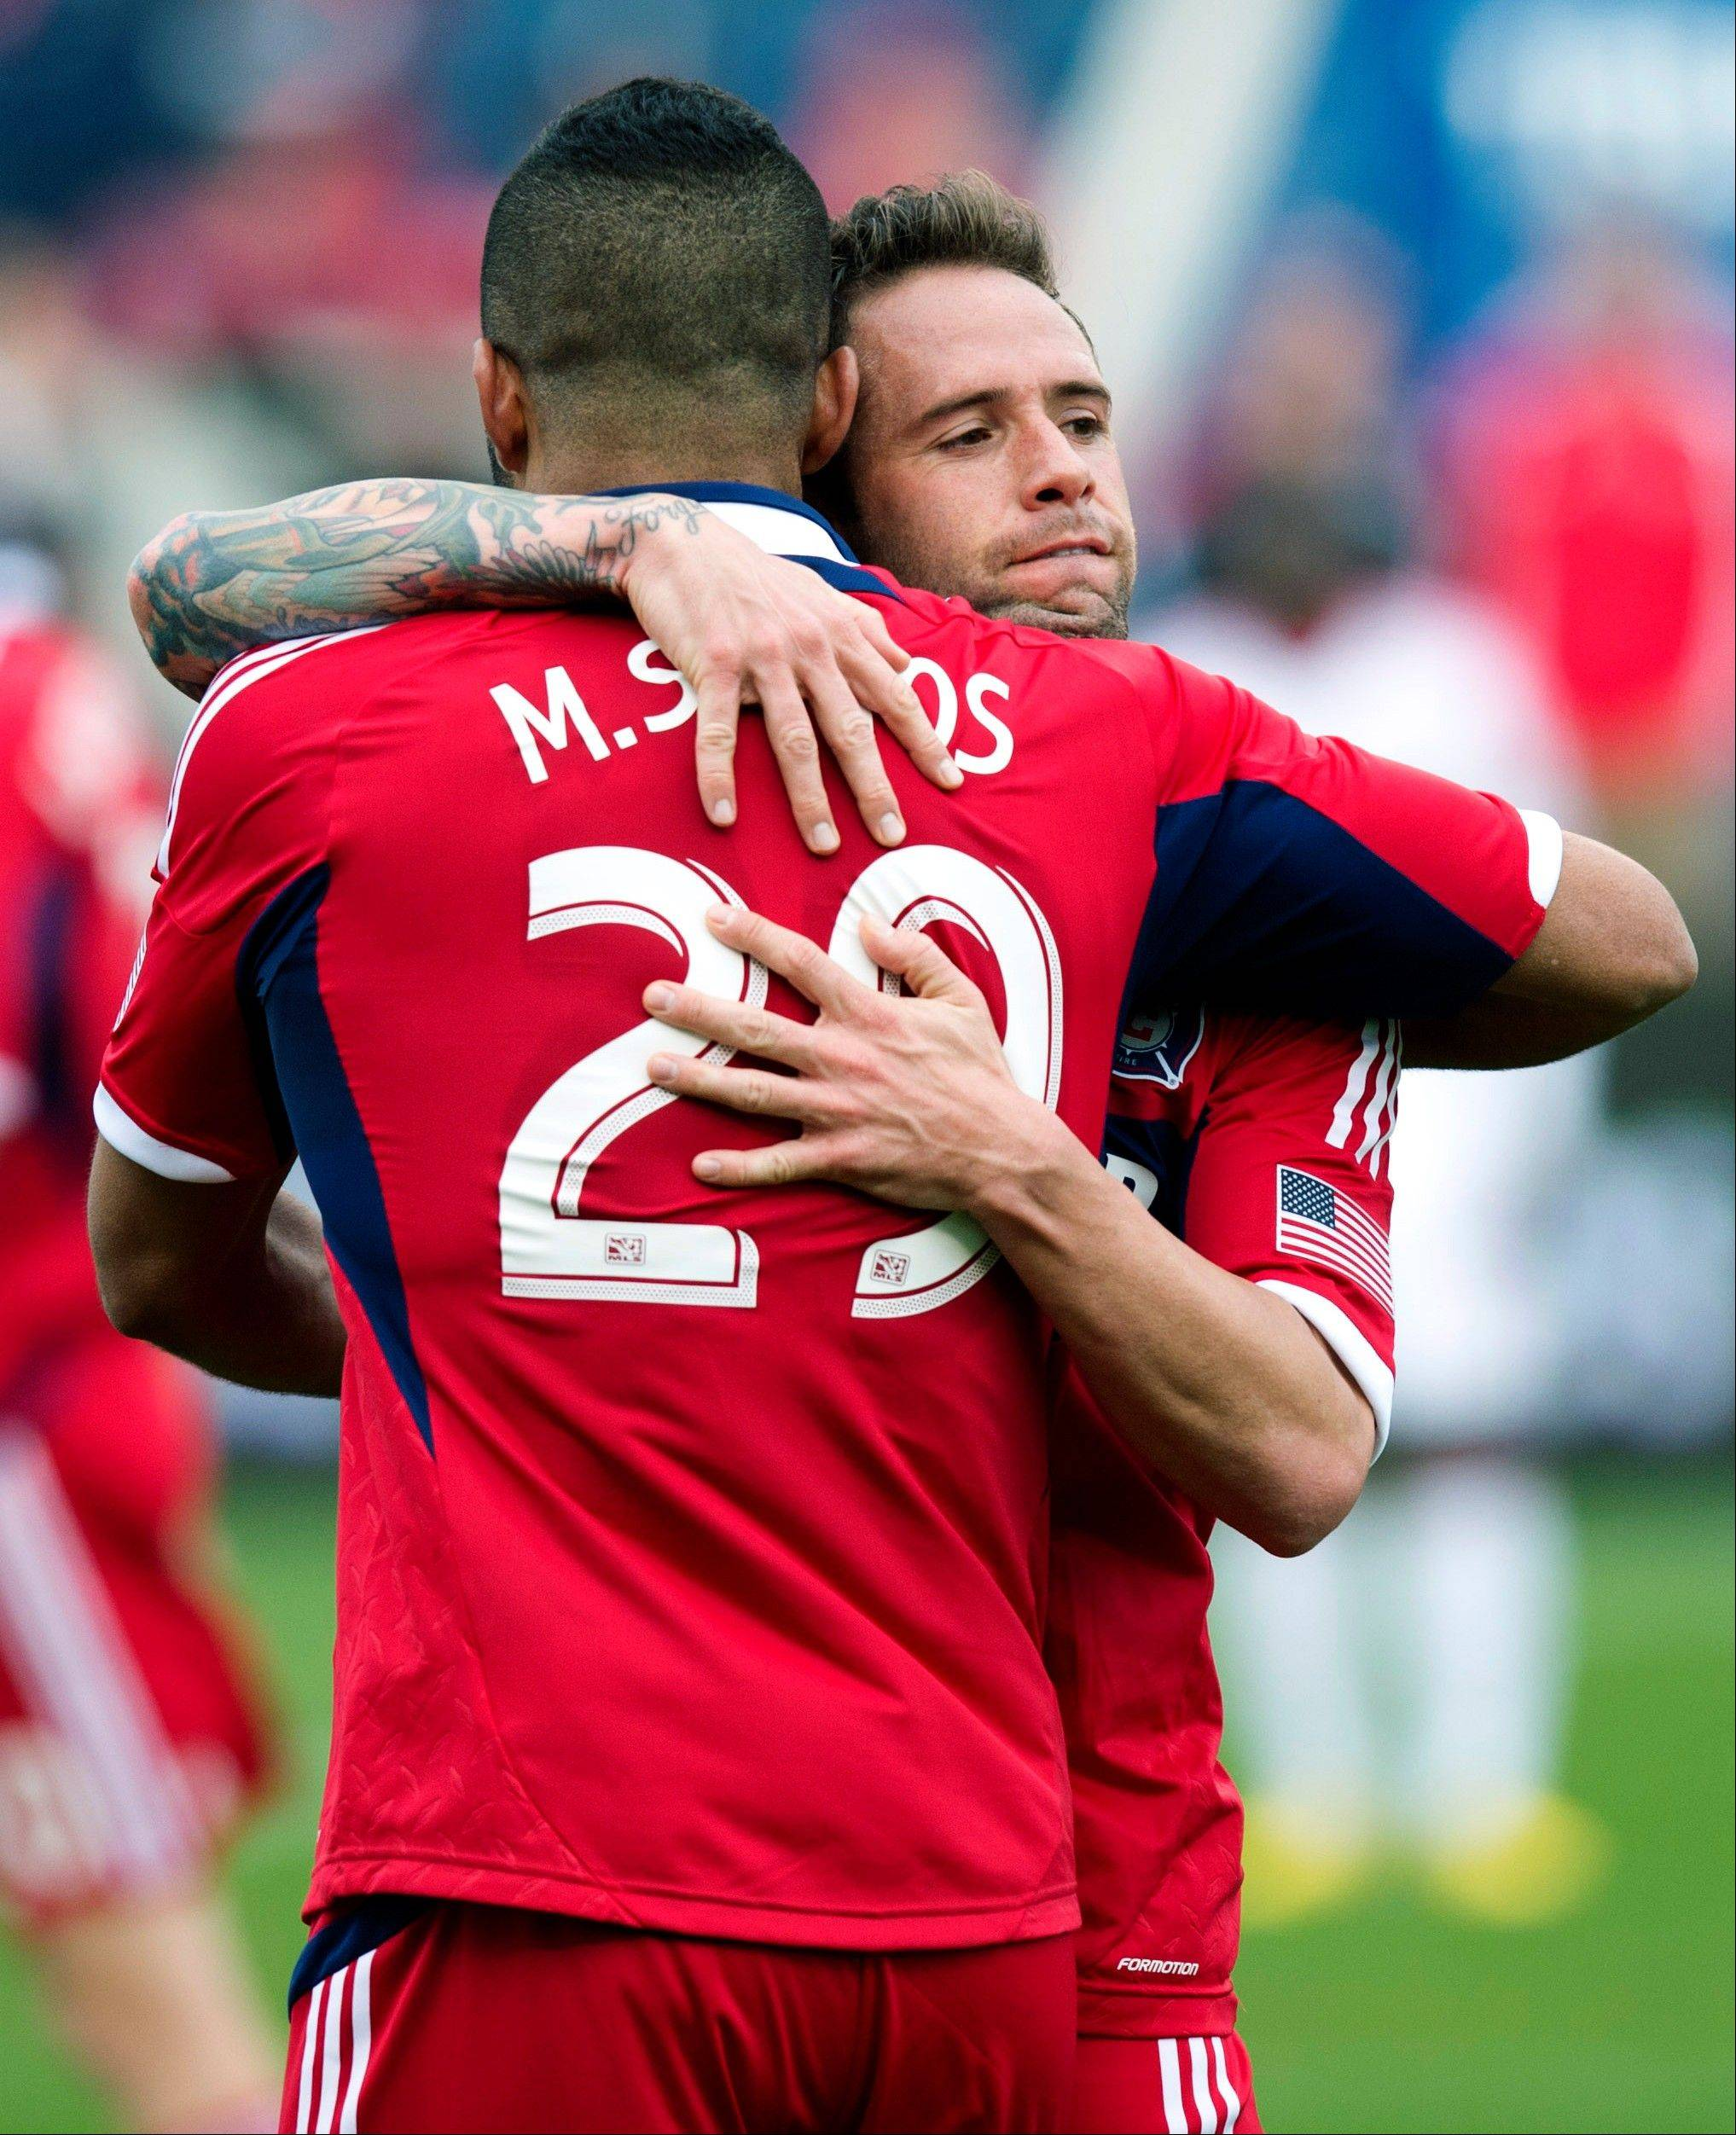 In this photo provided by the Chicago Fire, Chicago Fire's Daniel Paladini, right, hugs Maicon Santos after Santo's second goal against the New York Red Bulls during the second half of an MLS soccer match, Sunday, April 7, 2013, in Bridgeview, Ill. The Fire won 3-1.